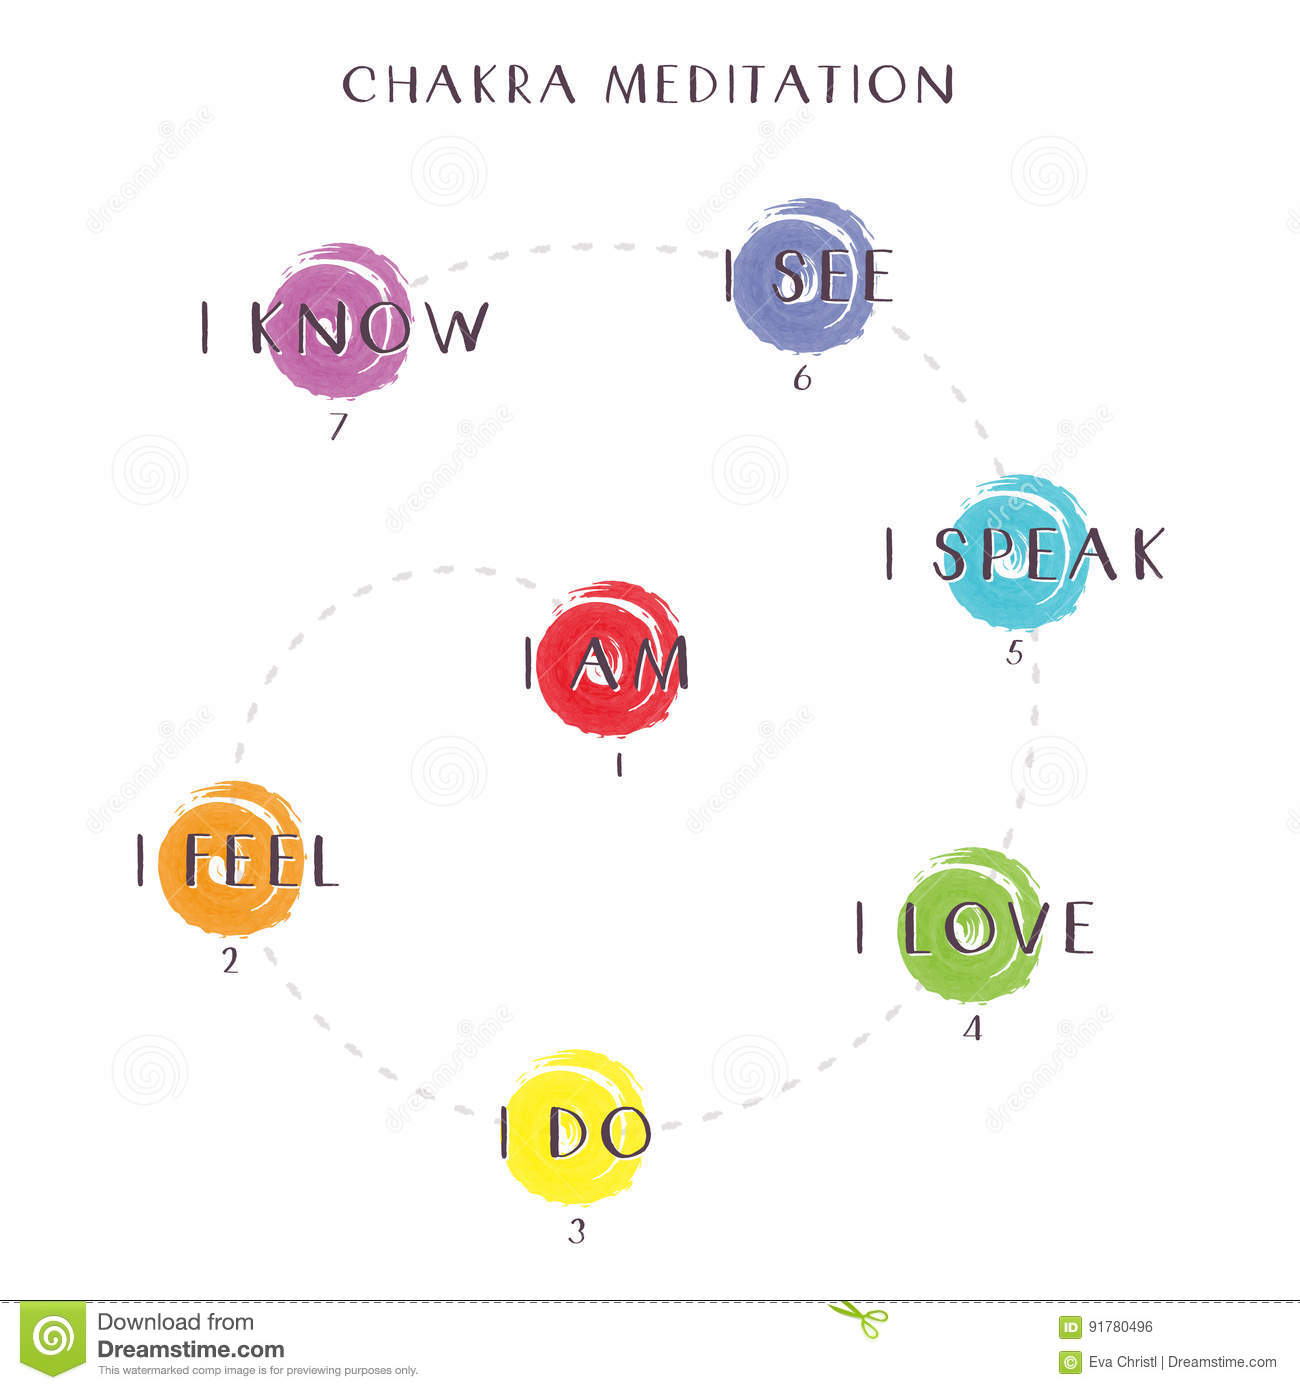 hight resolution of an illustrated chakra meditation diagram on a white background